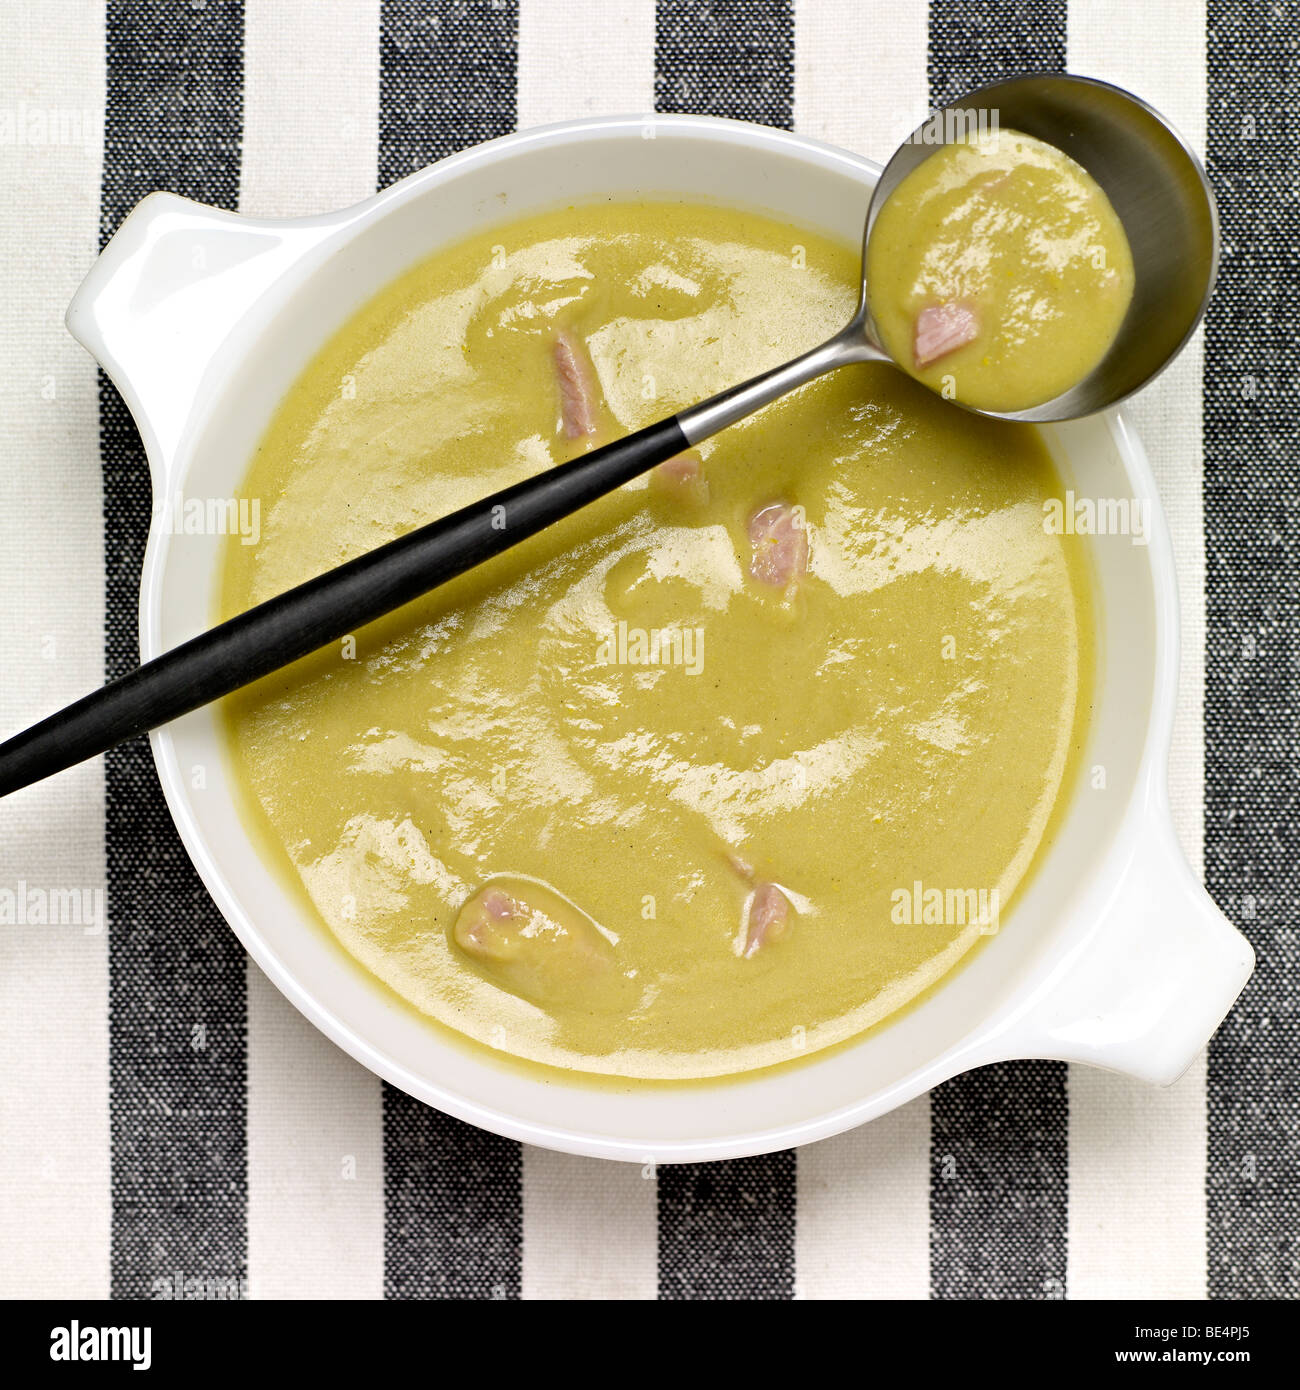 Pea and ham soup - Stock Image